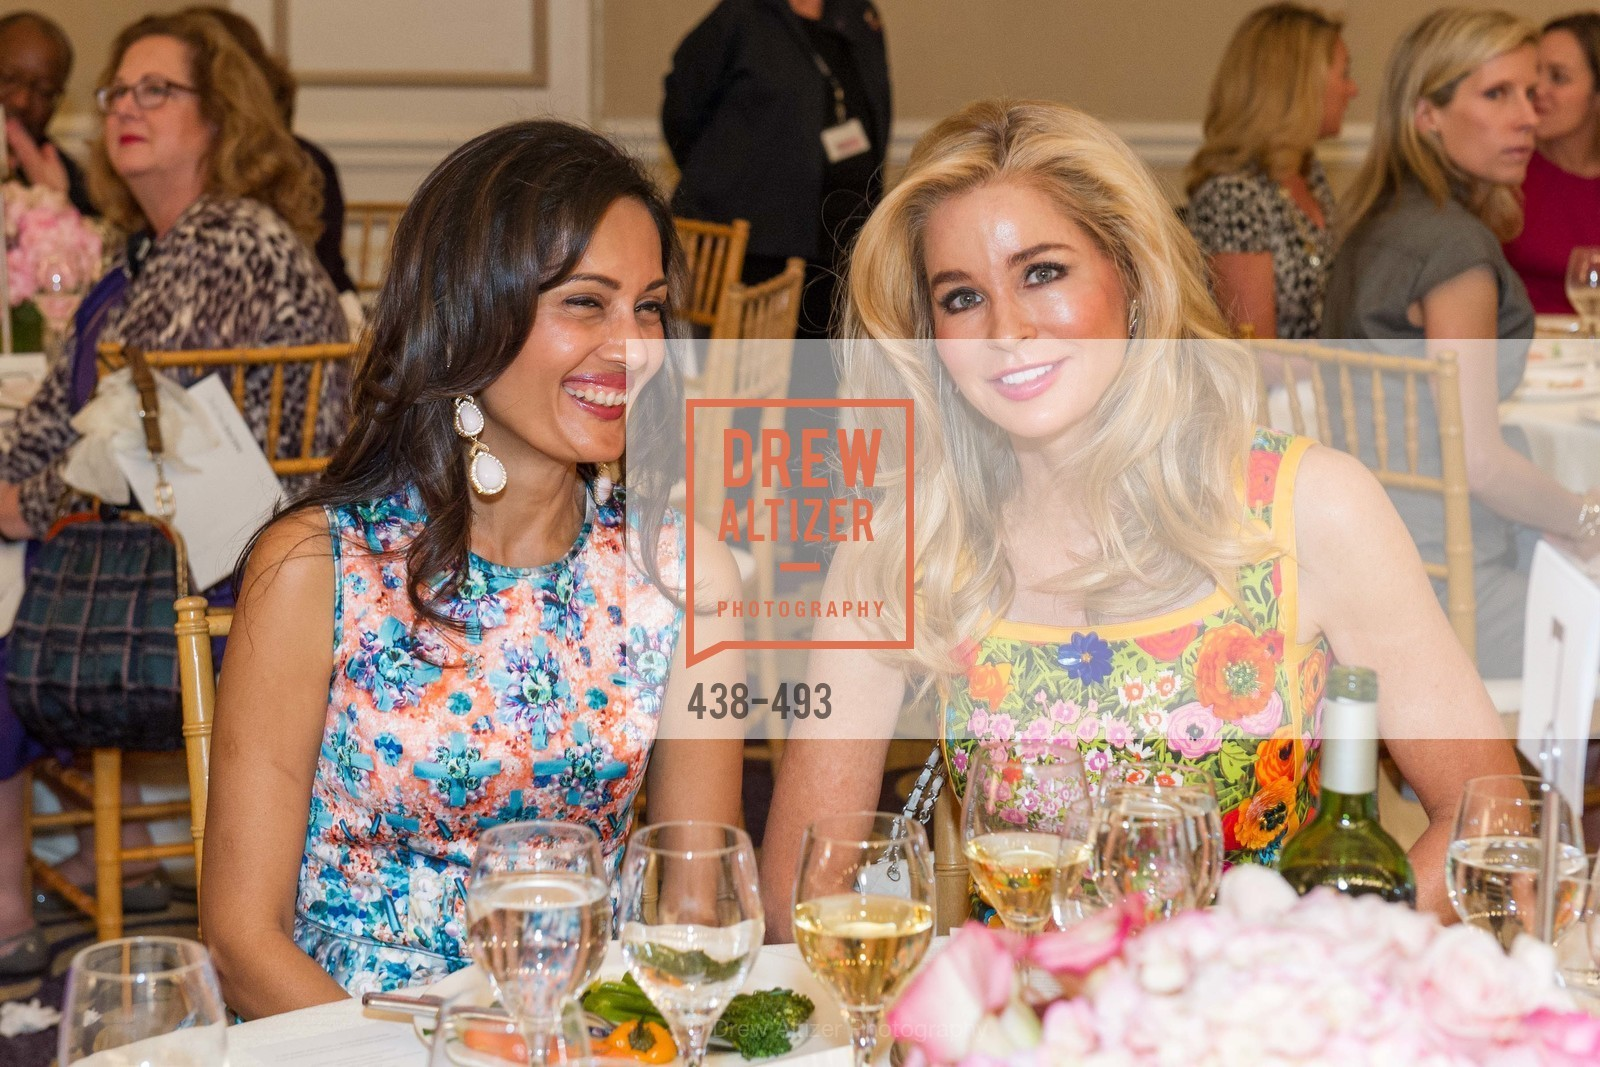 Komal Shah, Paula Carano, SAN FRANCISCO BALLET AUXULIARY 2014 Fashion Show, US. The Fairmont, April 3rd, 2014,Drew Altizer, Drew Altizer Photography, full-service event agency, private events, San Francisco photographer, photographer California